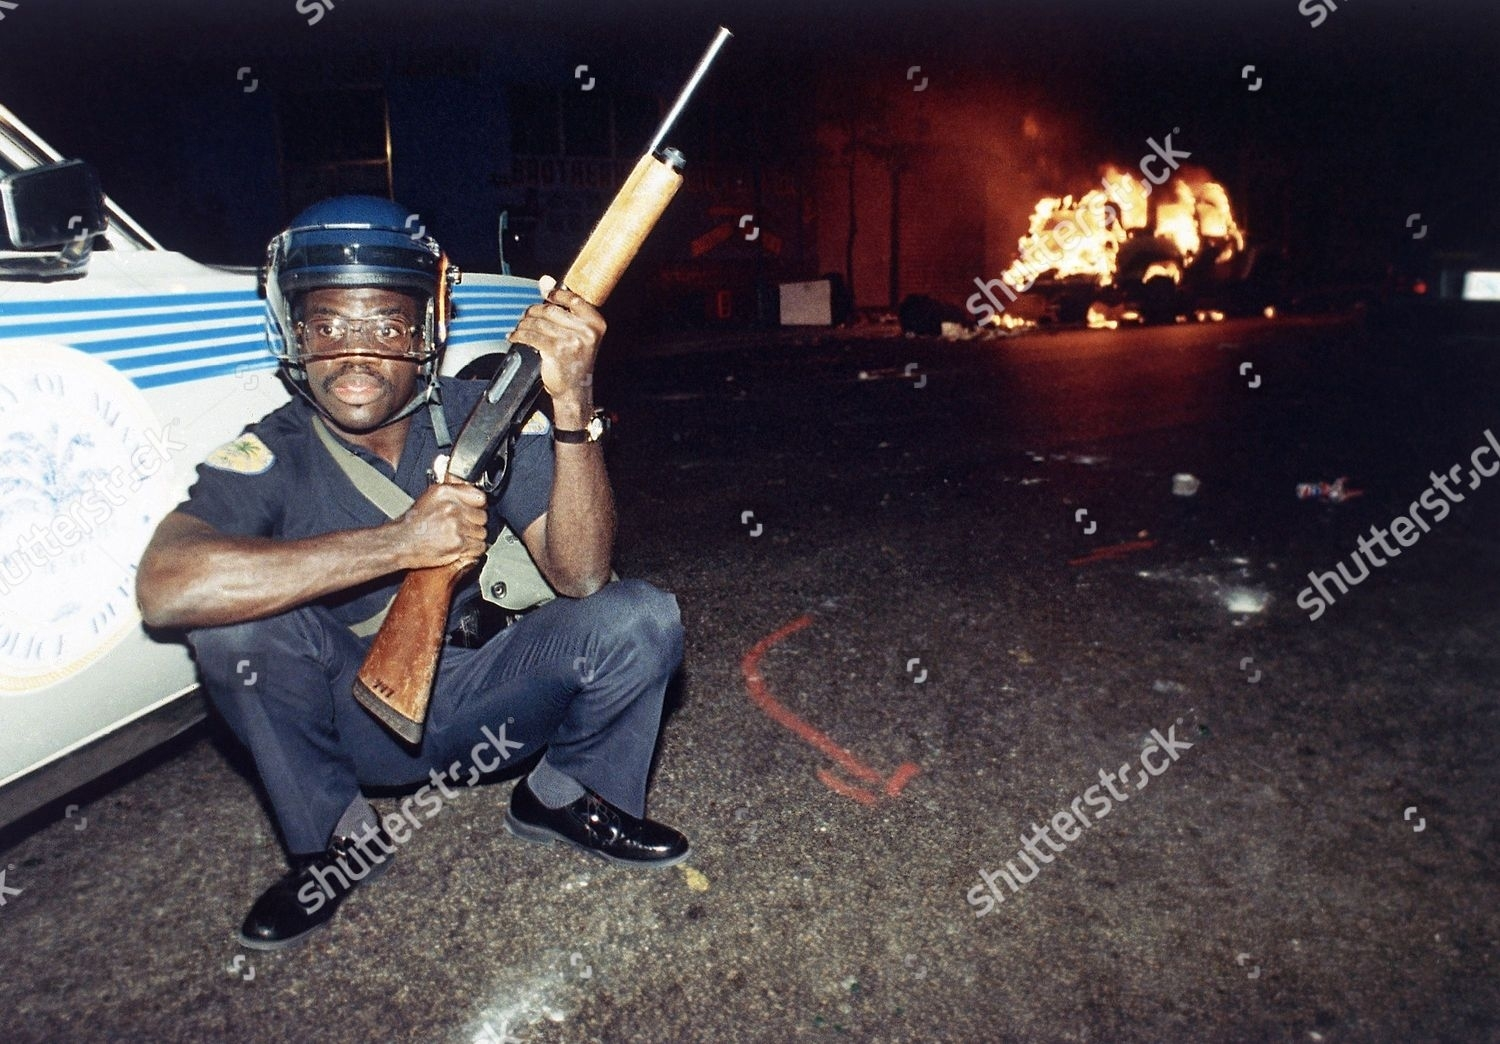 Miami Policeman Squats Behind Policecar Holding Rifle throughout Miami Super Bowl Riot